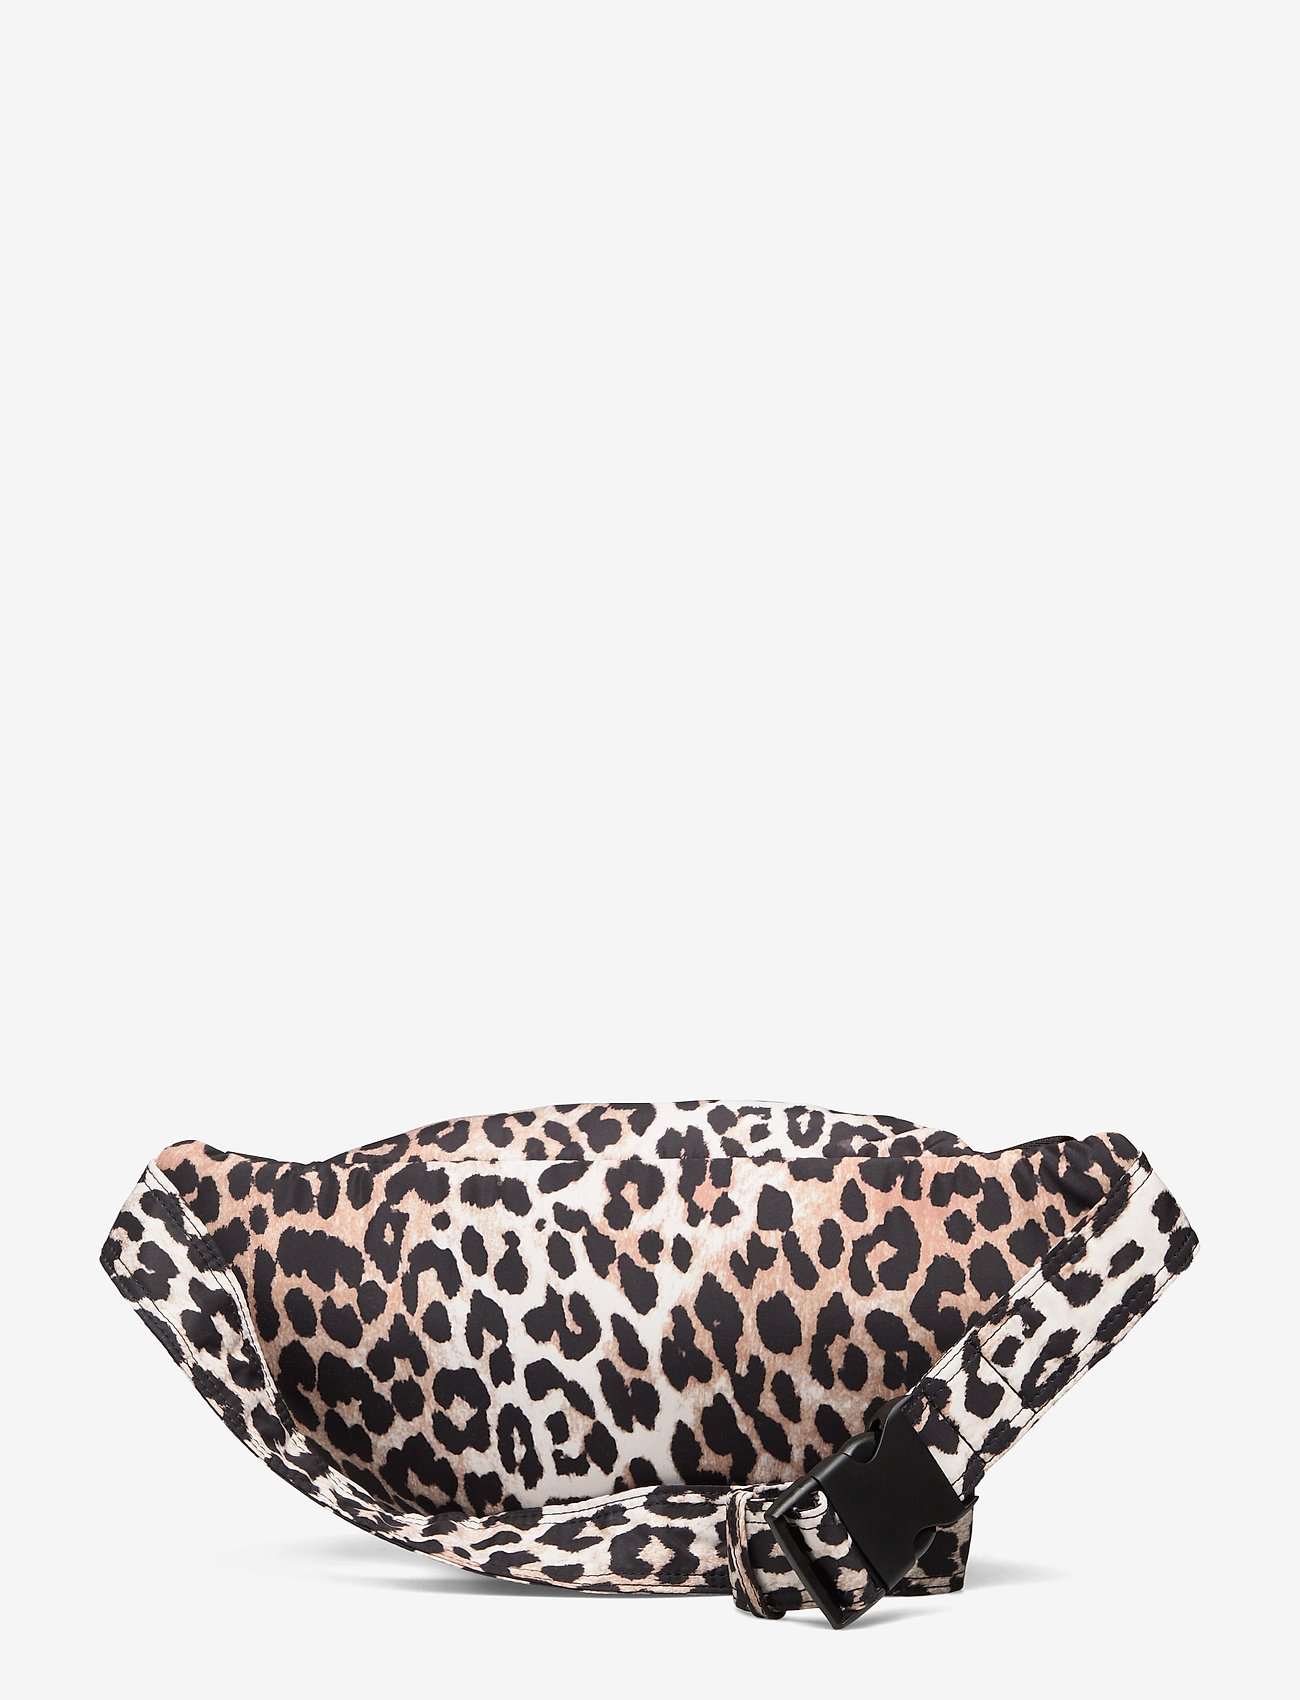 Ganni - Recycled Tech Fabric Bags - belt bags - leopard - 1